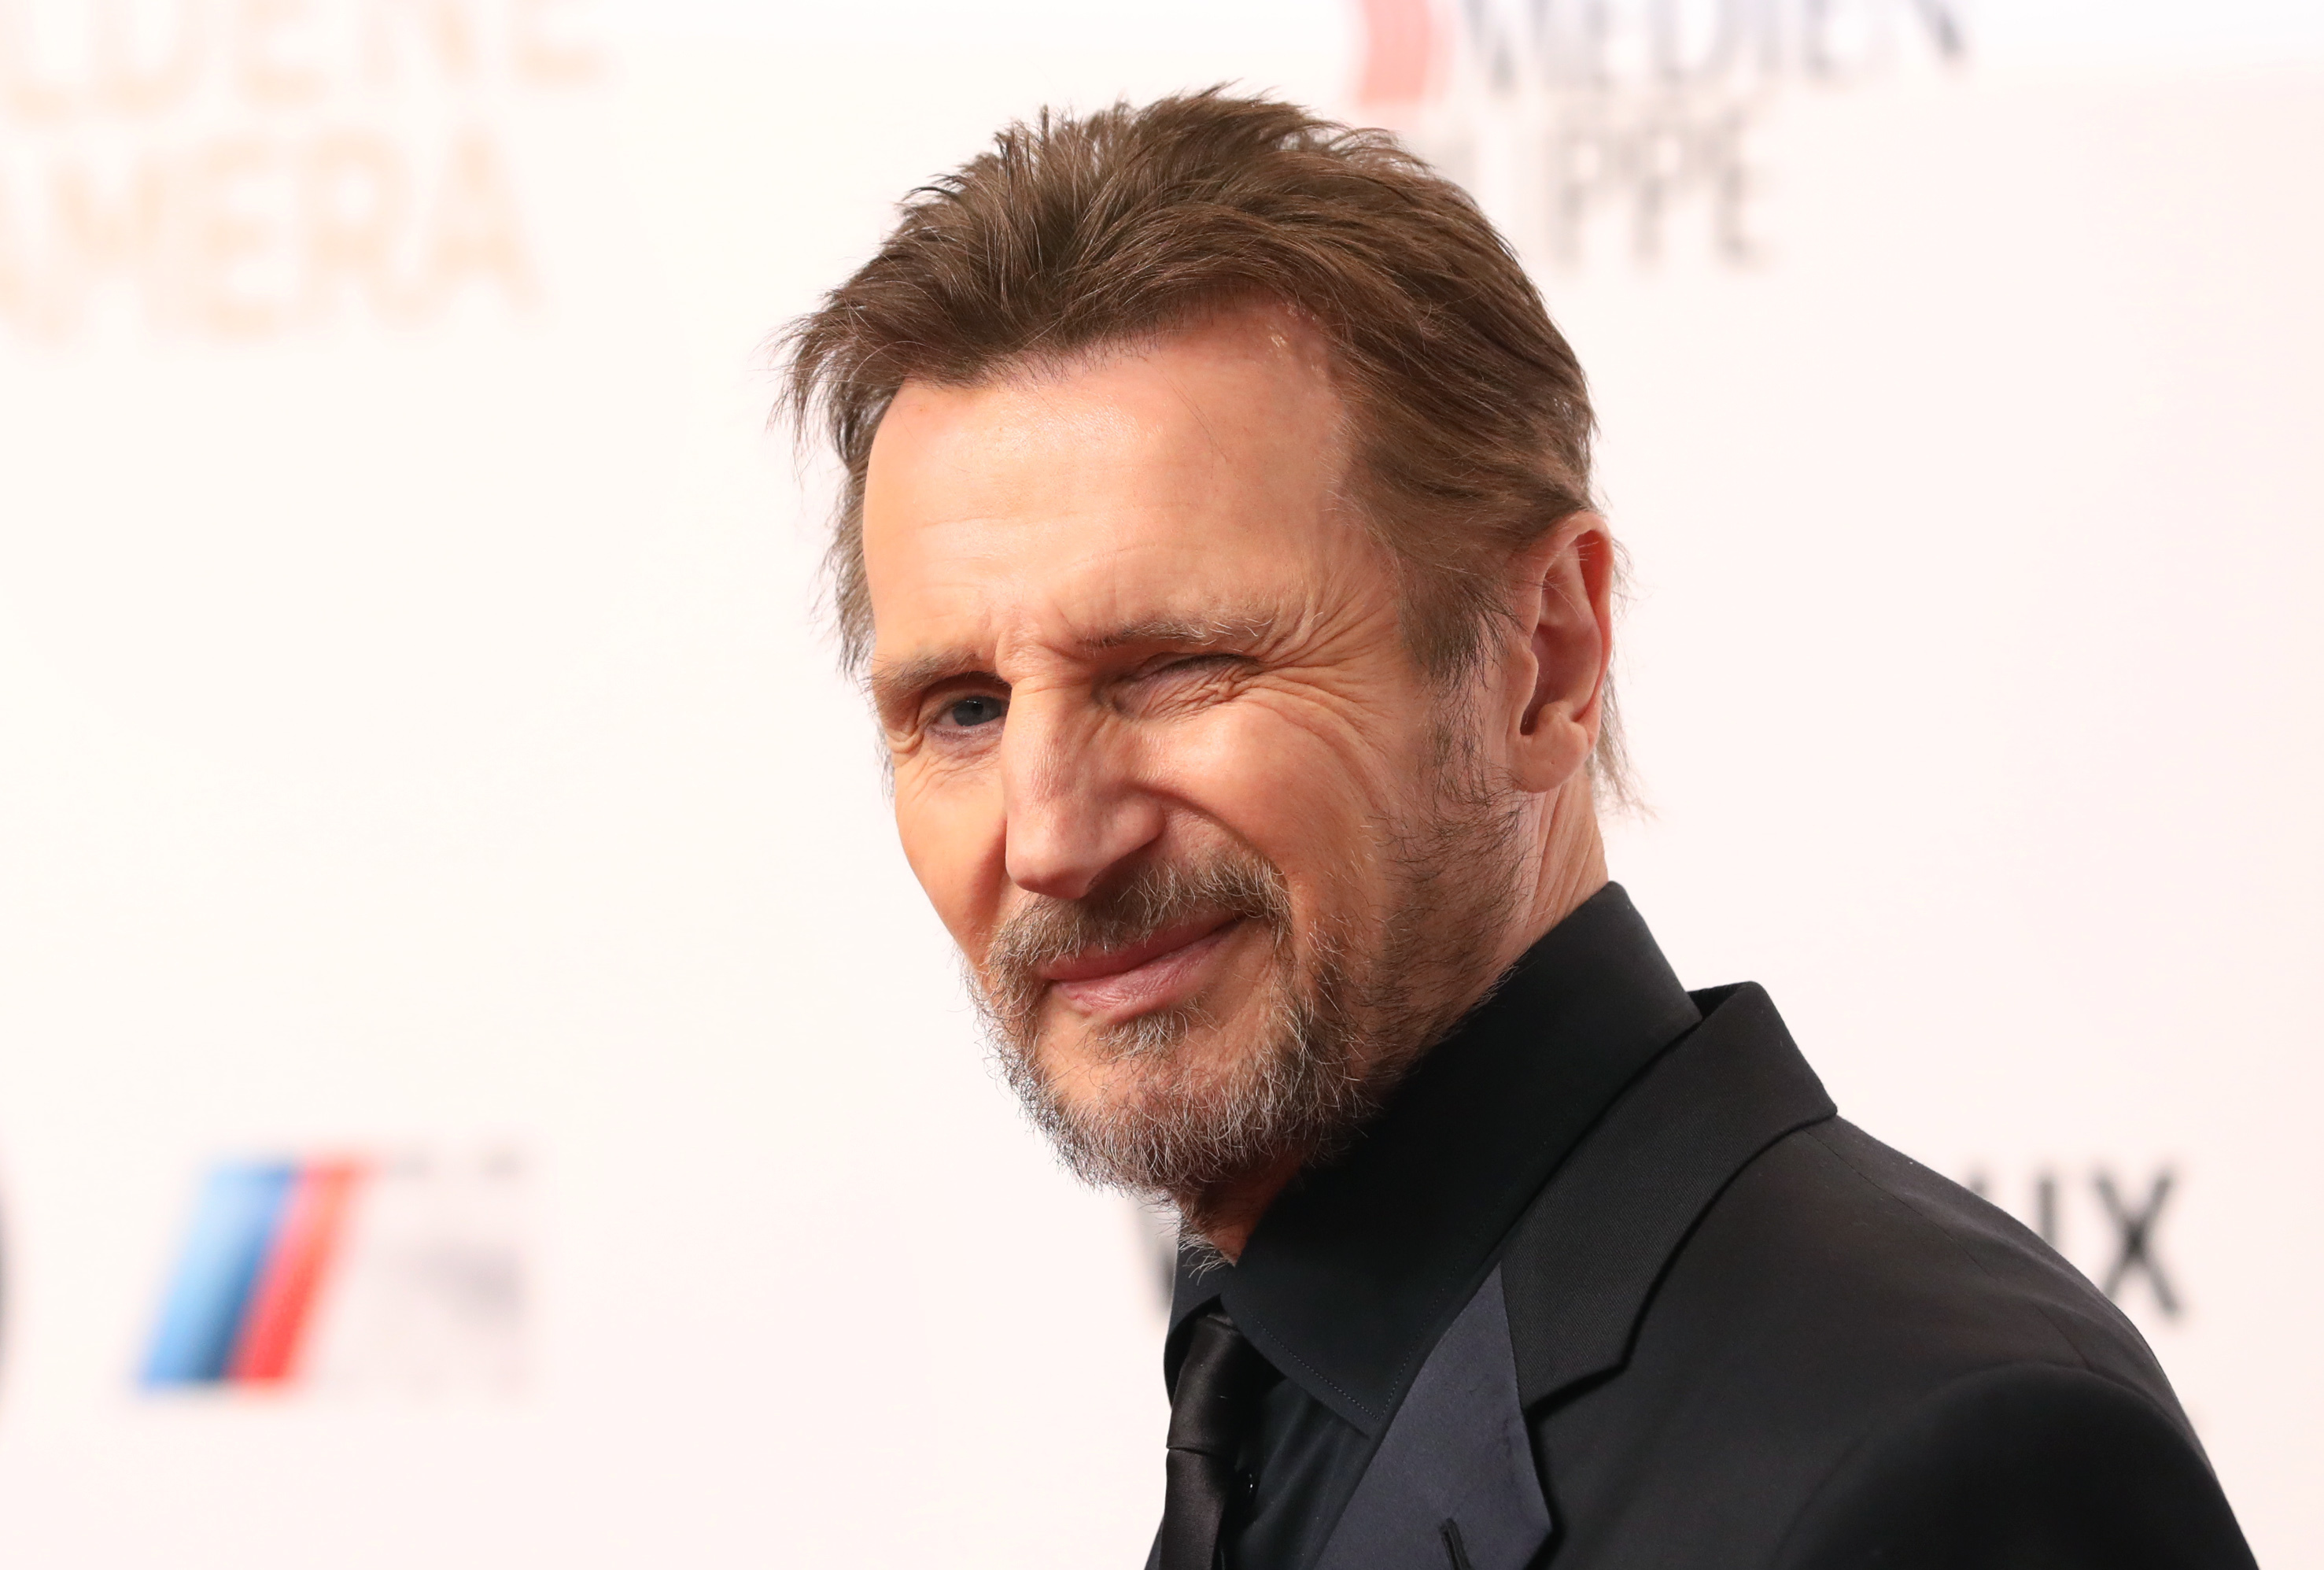 To be fair, Liam Neeson is pretty good in most stuff. Credit: PA